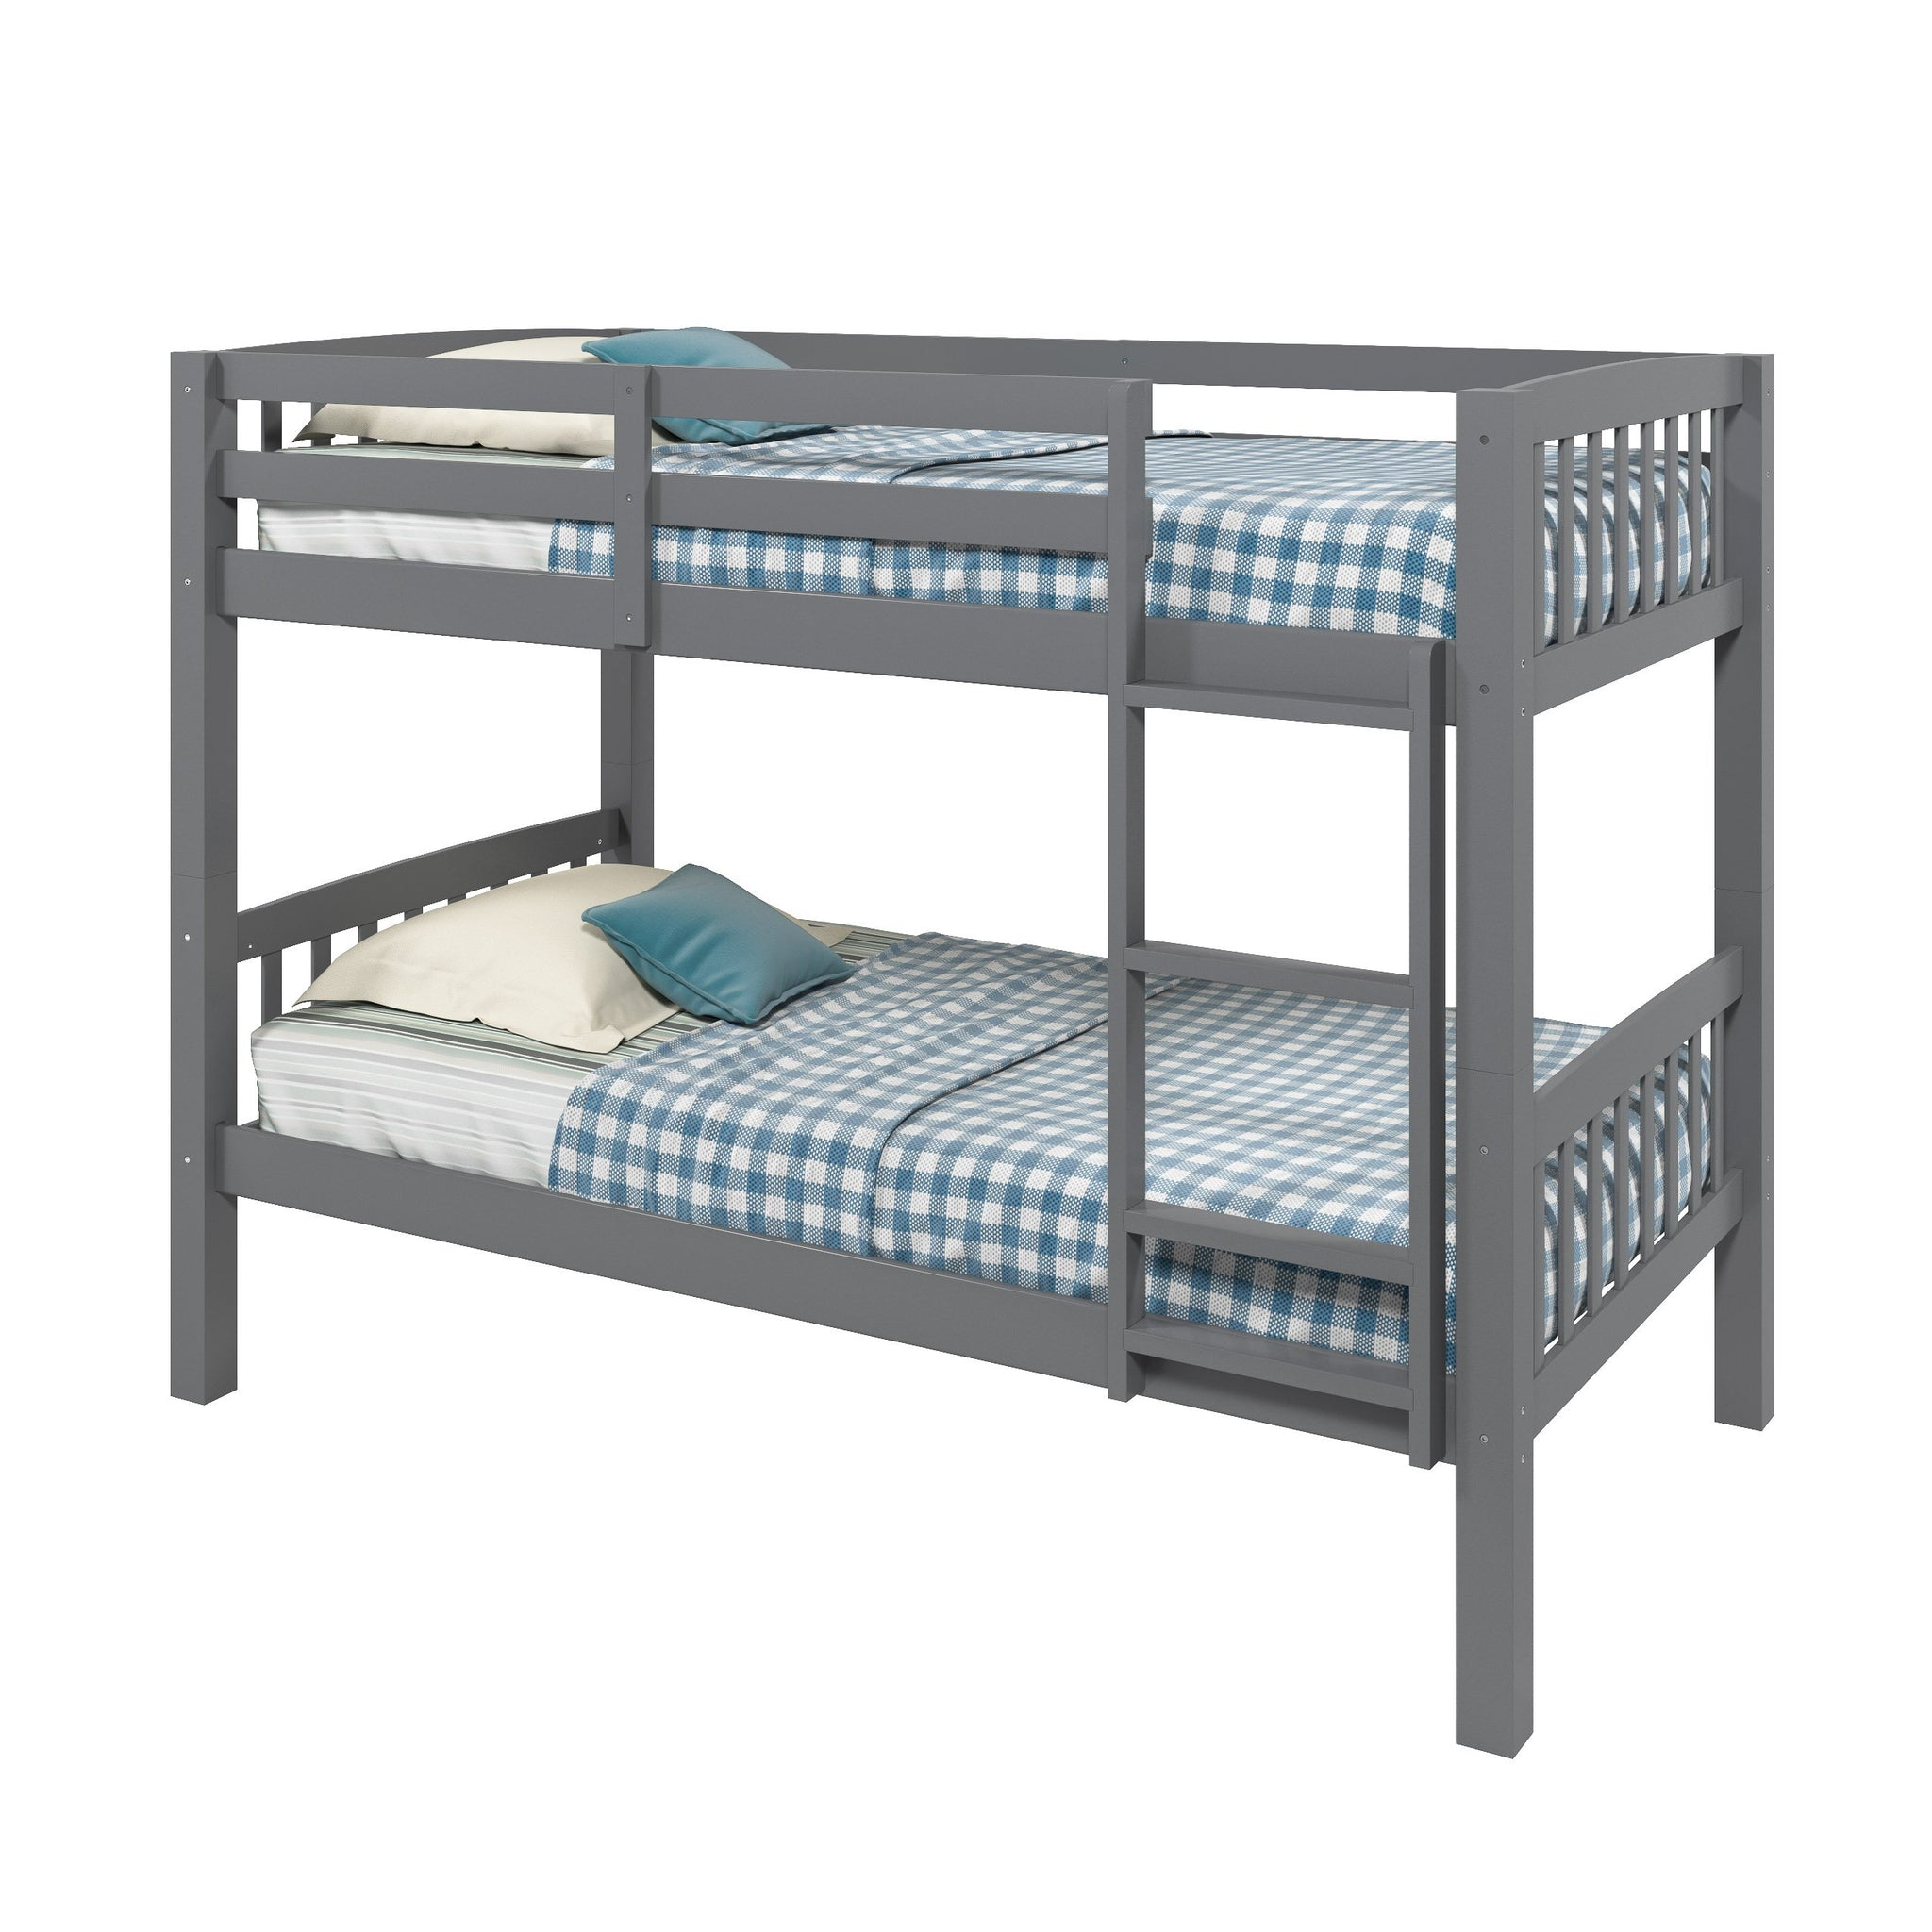 Bunk Bed Clearance Sale Online Discount Shop For Electronics Apparel Toys Books Games Computers Shoes Jewelry Watches Baby Products Sports Outdoors Office Products Bed Bath Furniture Tools Hardware Automotive